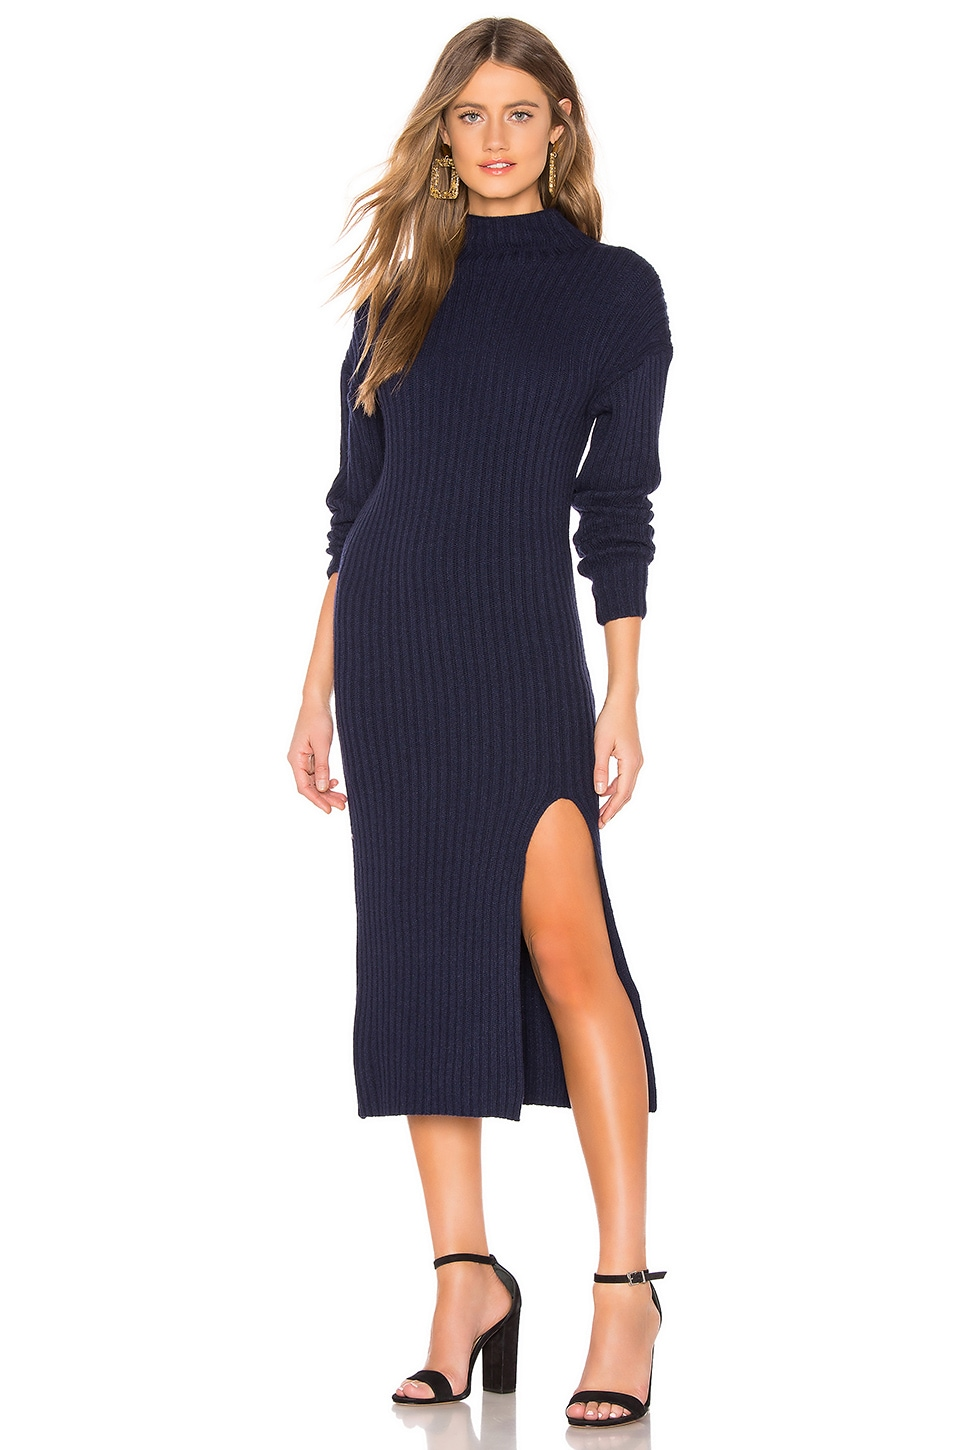 About Us Gabrielle Sweater Dress in Navy